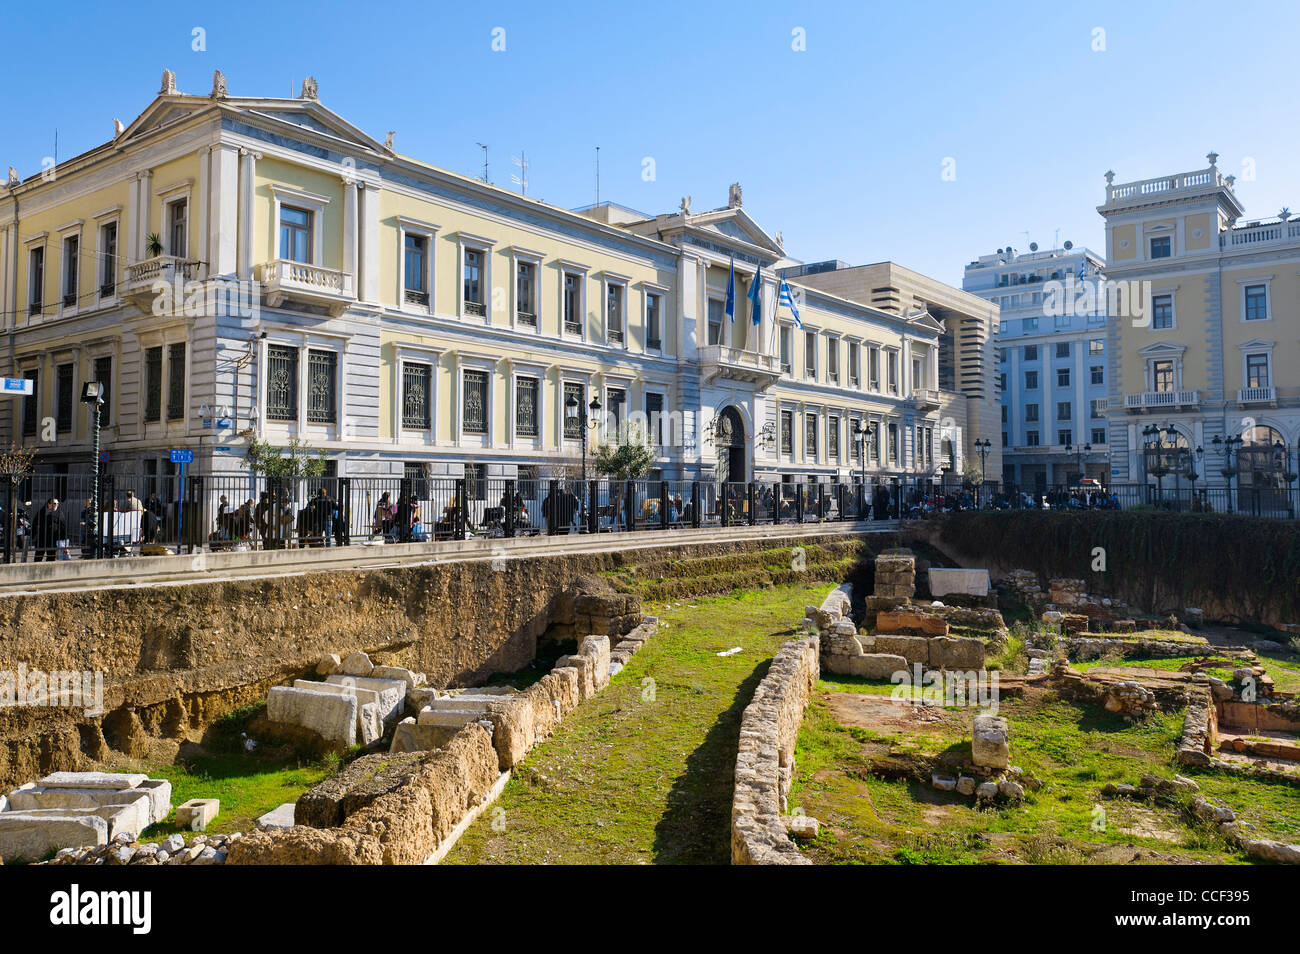 Excavation site in front of the National Bank of Greece, Athens, Greece, Europe - Stock Image